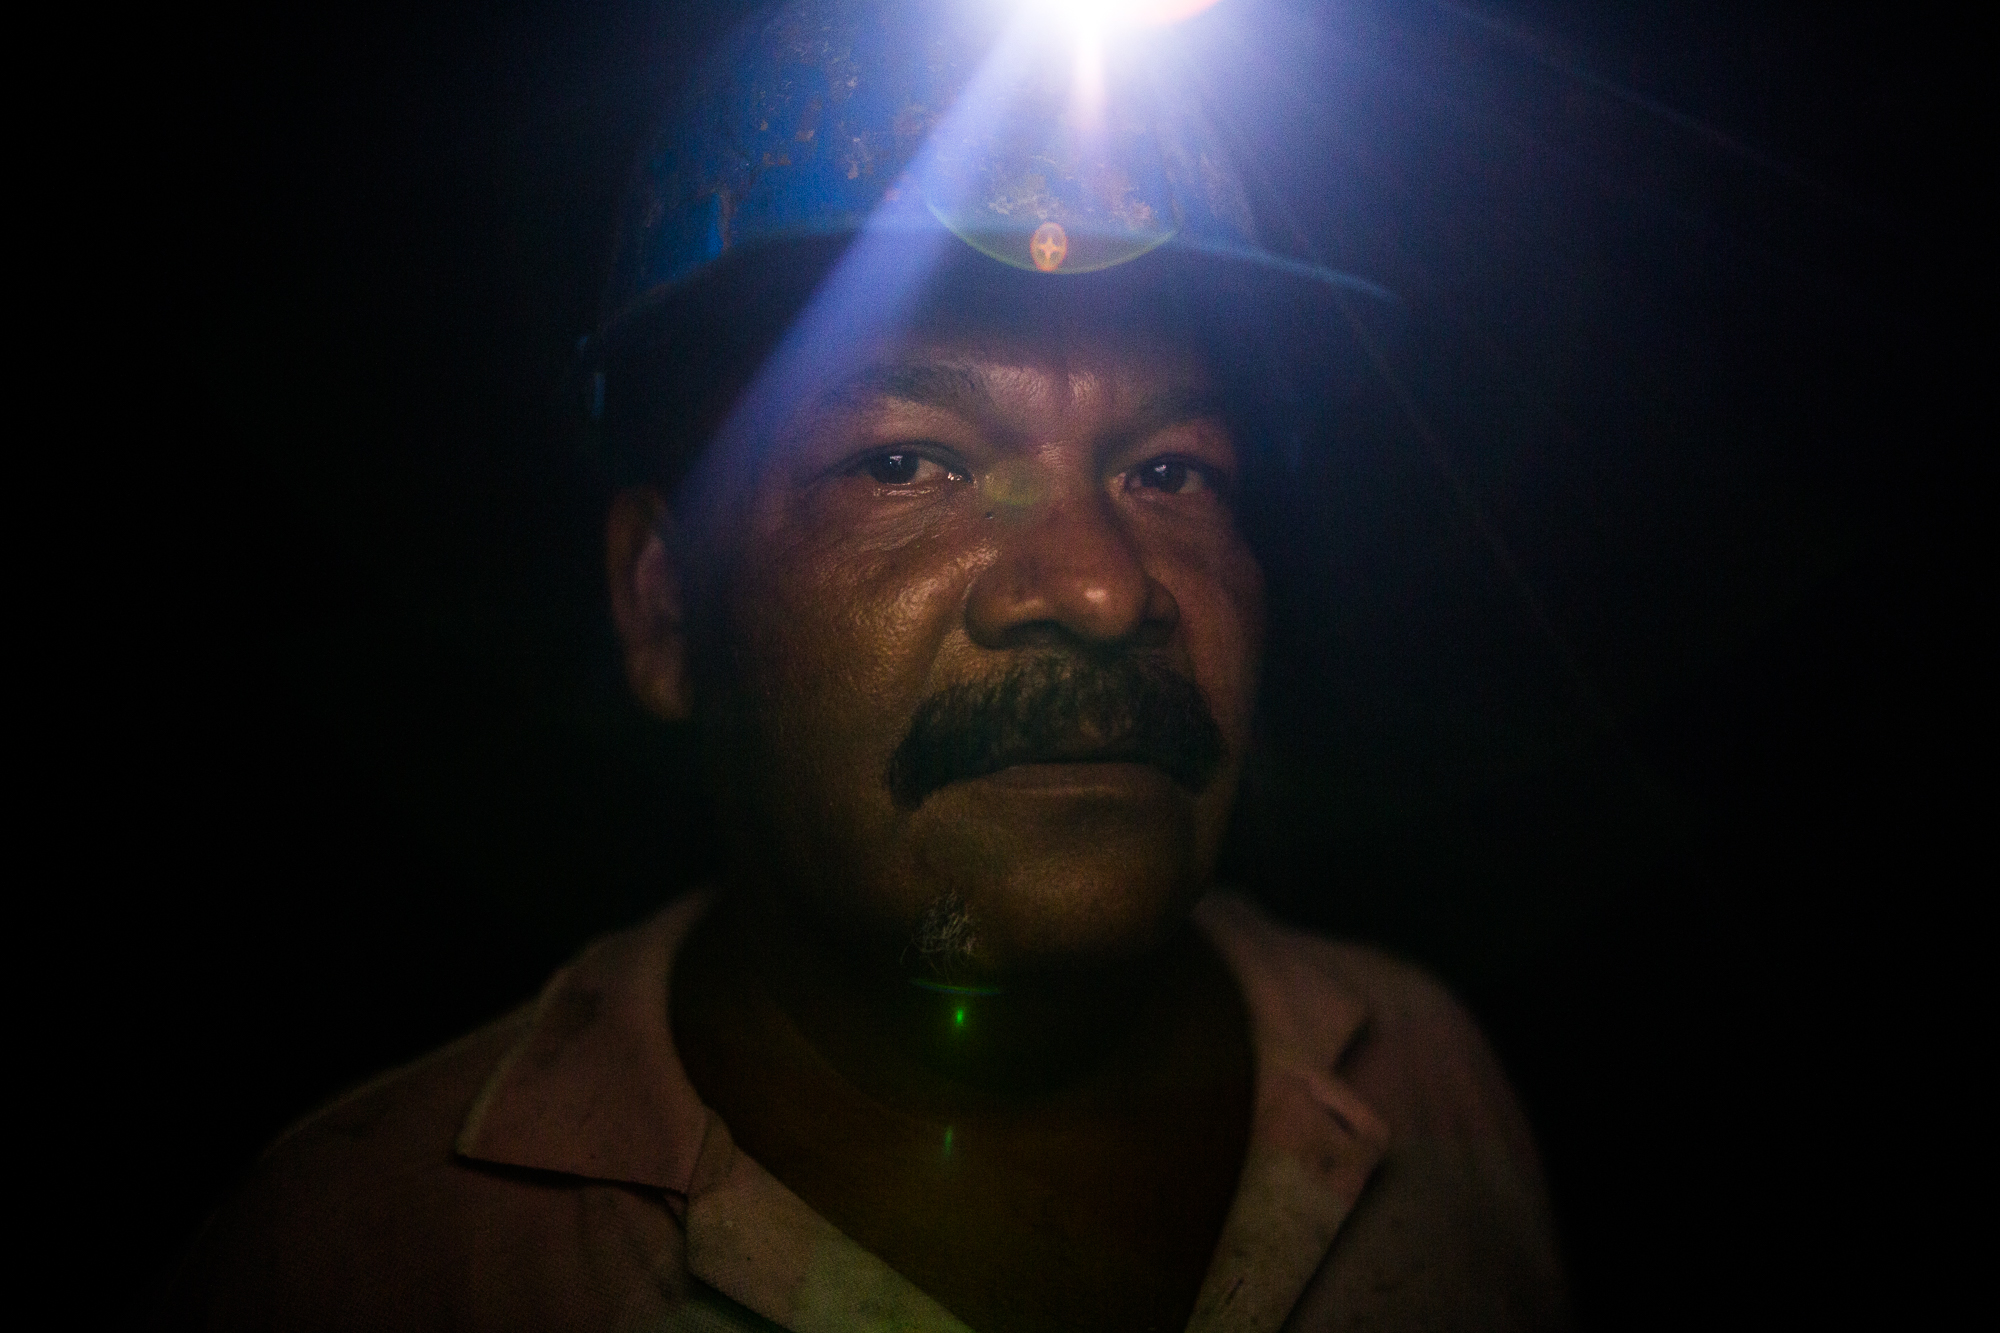 Daniel Ortiz, 48, from Cordoba, Colombia was unemployed on the coast and came to Mina Walter looking for a job. Since May 2016, he has been working to remove stones from the earth. Mina Walter South Bolivar, Colombia. May 12, 2017